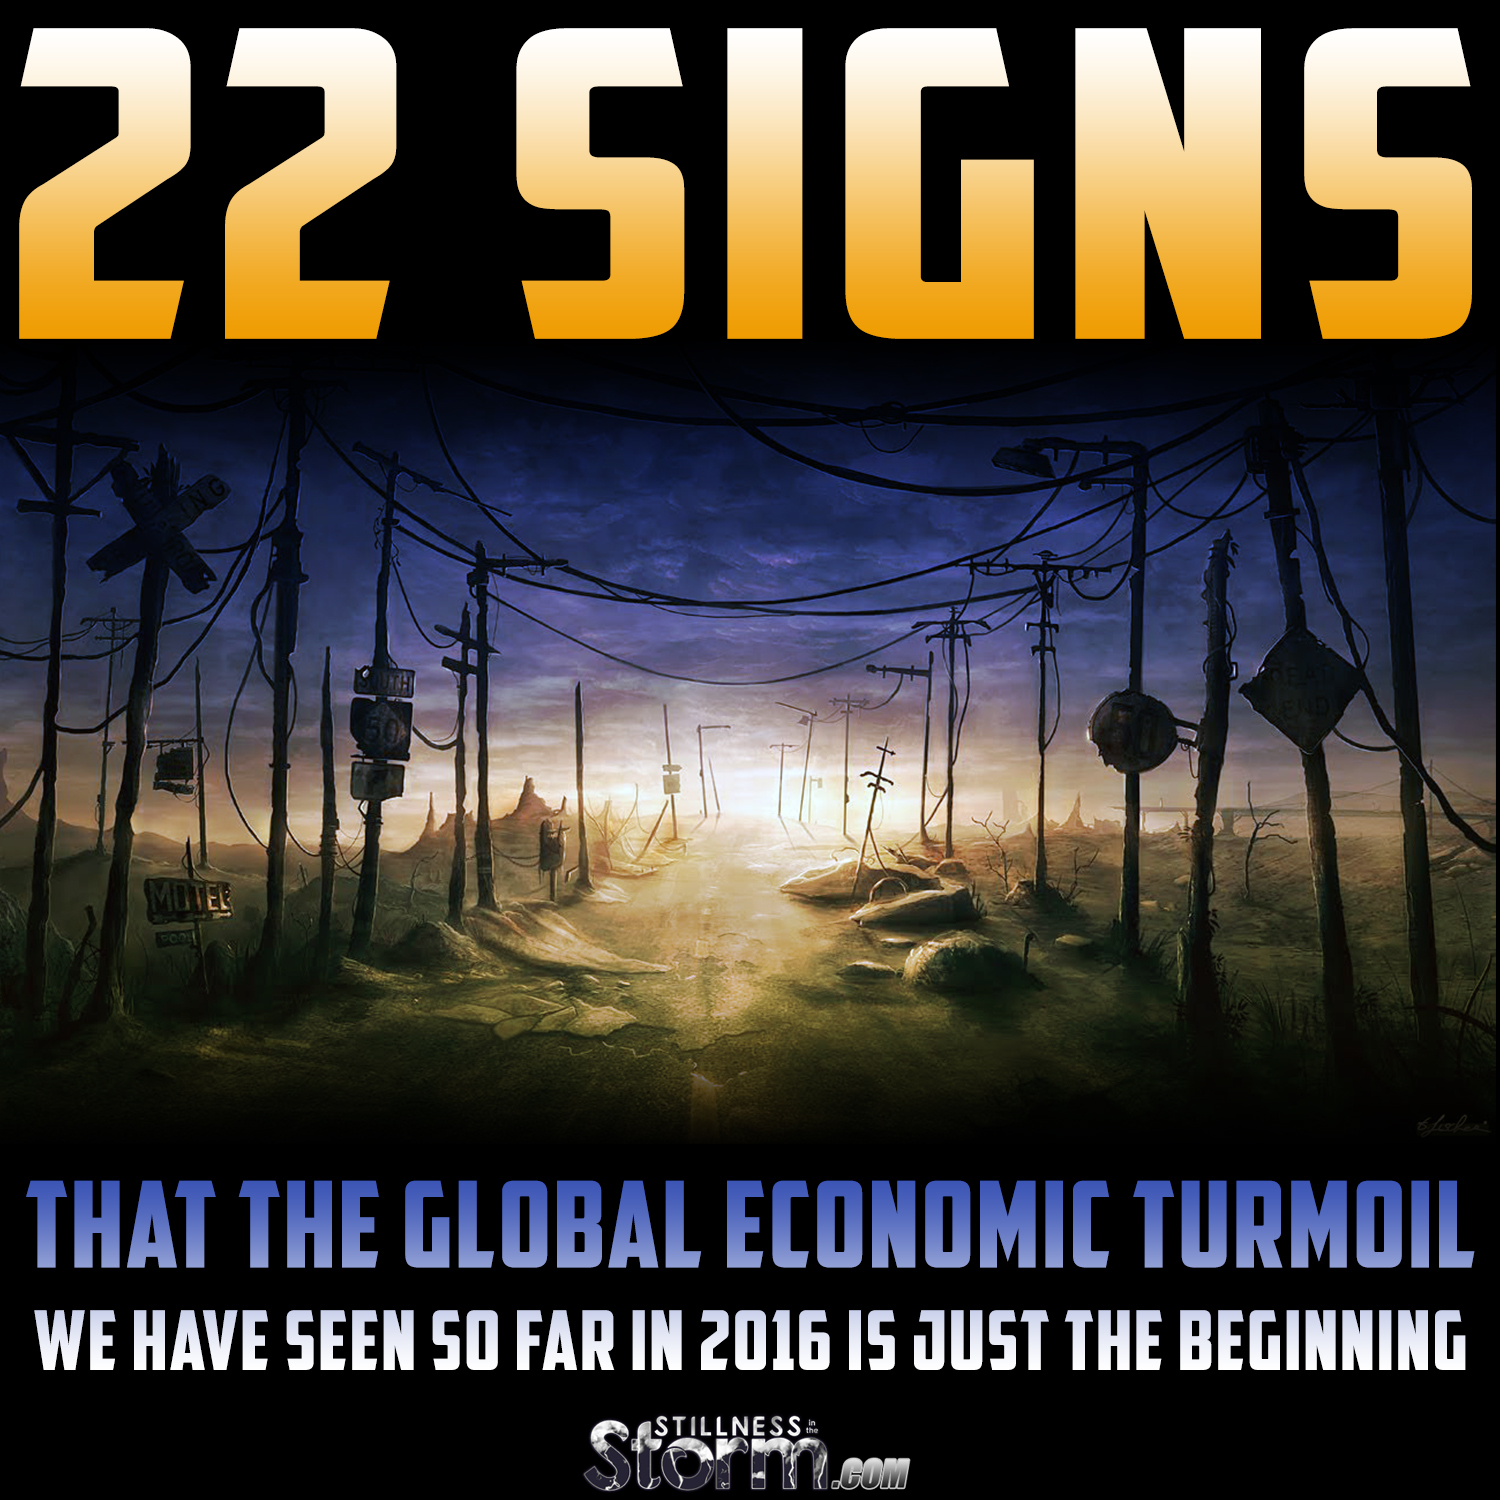 22 Signs That The Global Economic Turmoil We Have Seen So